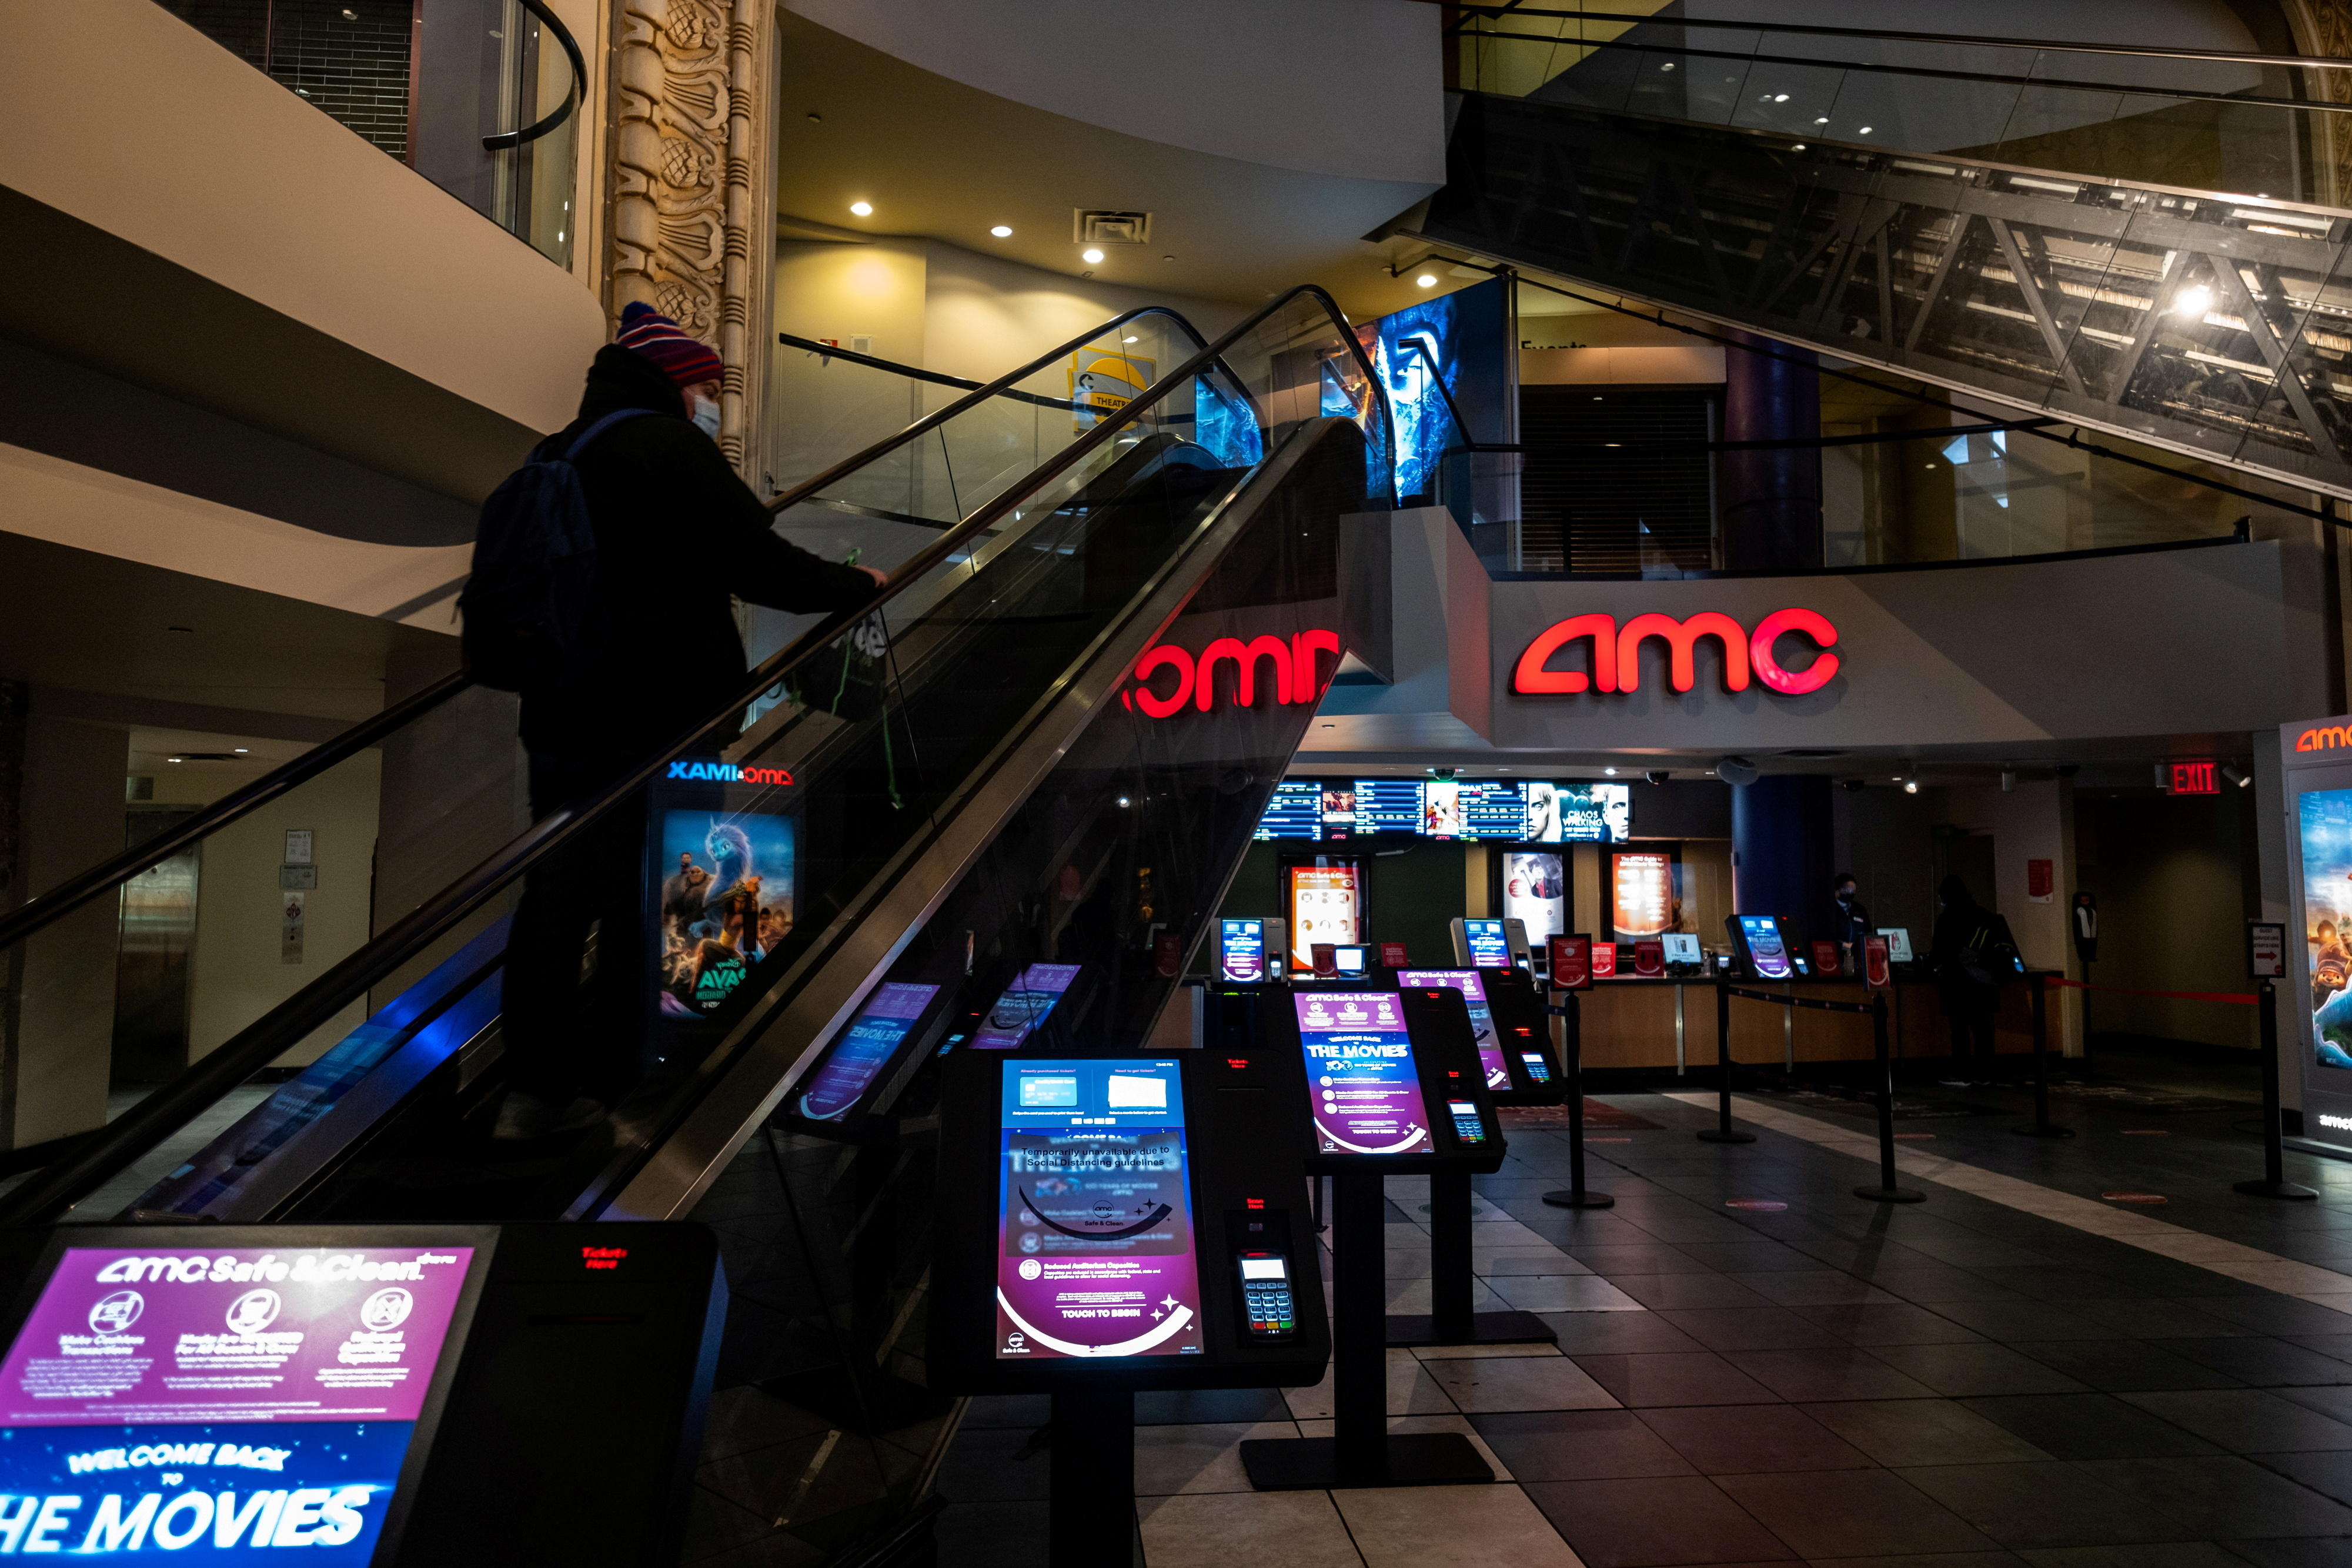 A person wearing a protective mask rides an escalator at the AMC movie theatre in Times Square in the Manhattan borough of New York City, New York, U.S., March 6, 2021. REUTERS/Jeenah Moon/File Photo